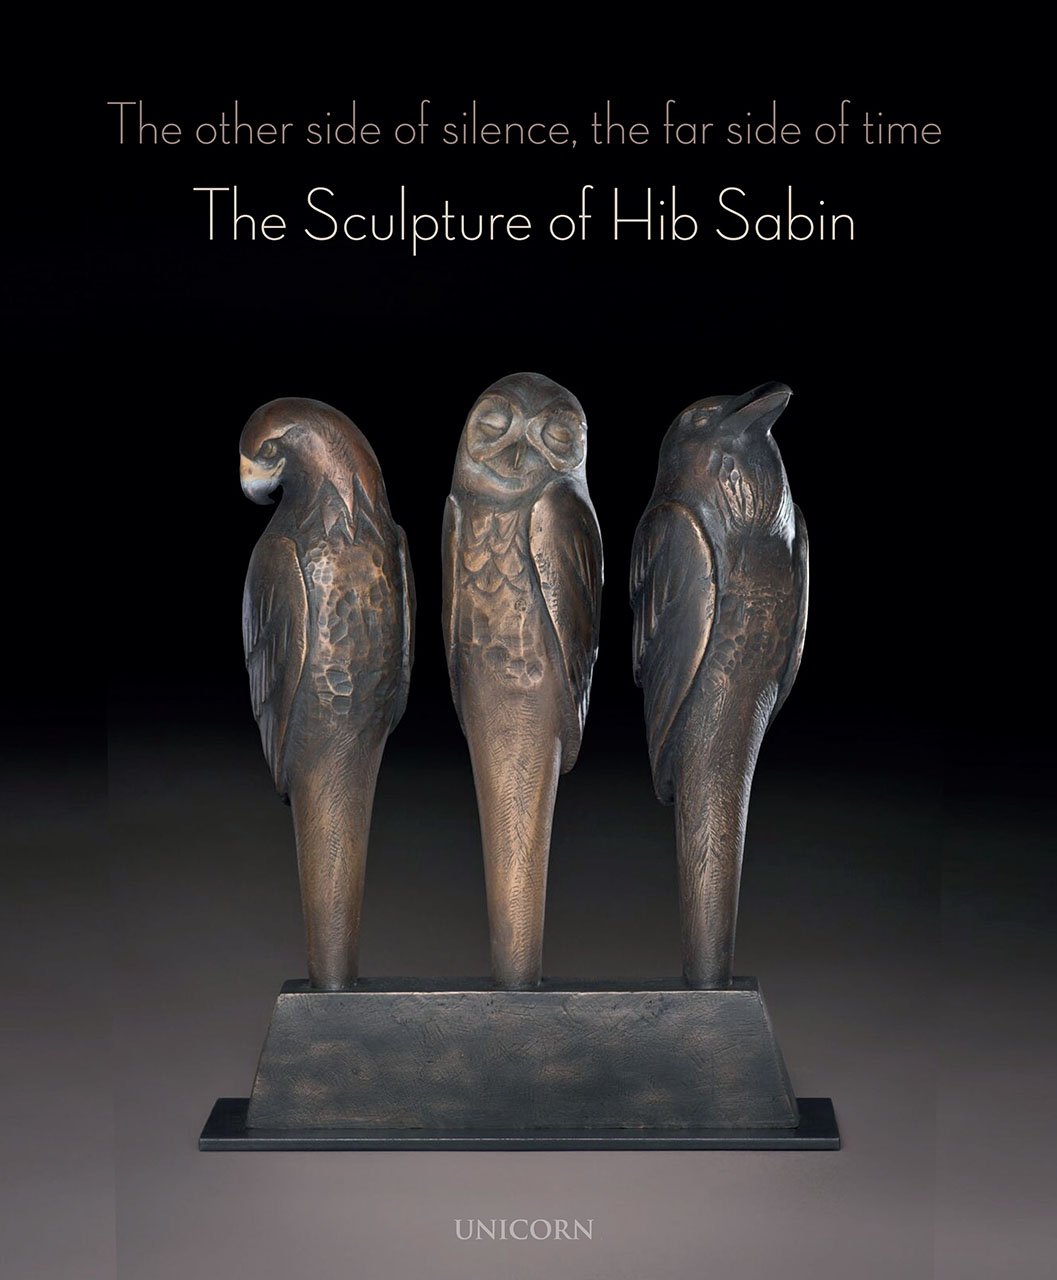 The Other Side of Silence, The Far Side of Time: The Sculpture of Hib Sabin